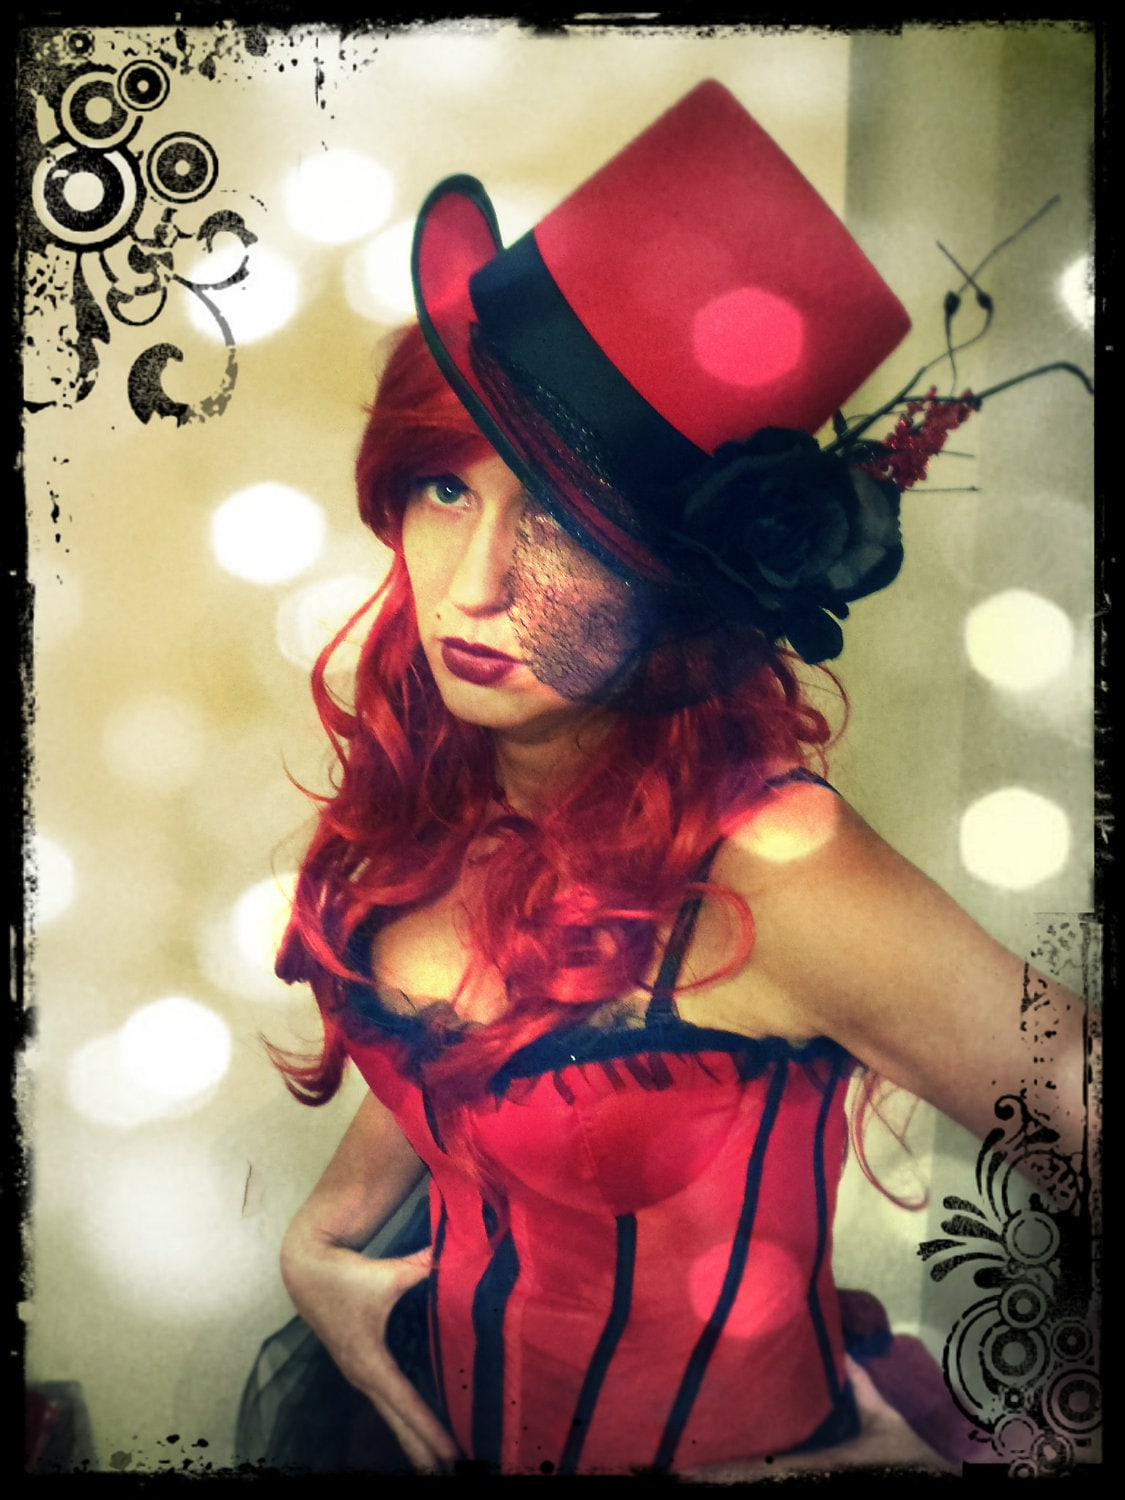 Valentines Day Moulin Rouge-style Red and Black Burlesque Corset and Victorian Bustle Skirt